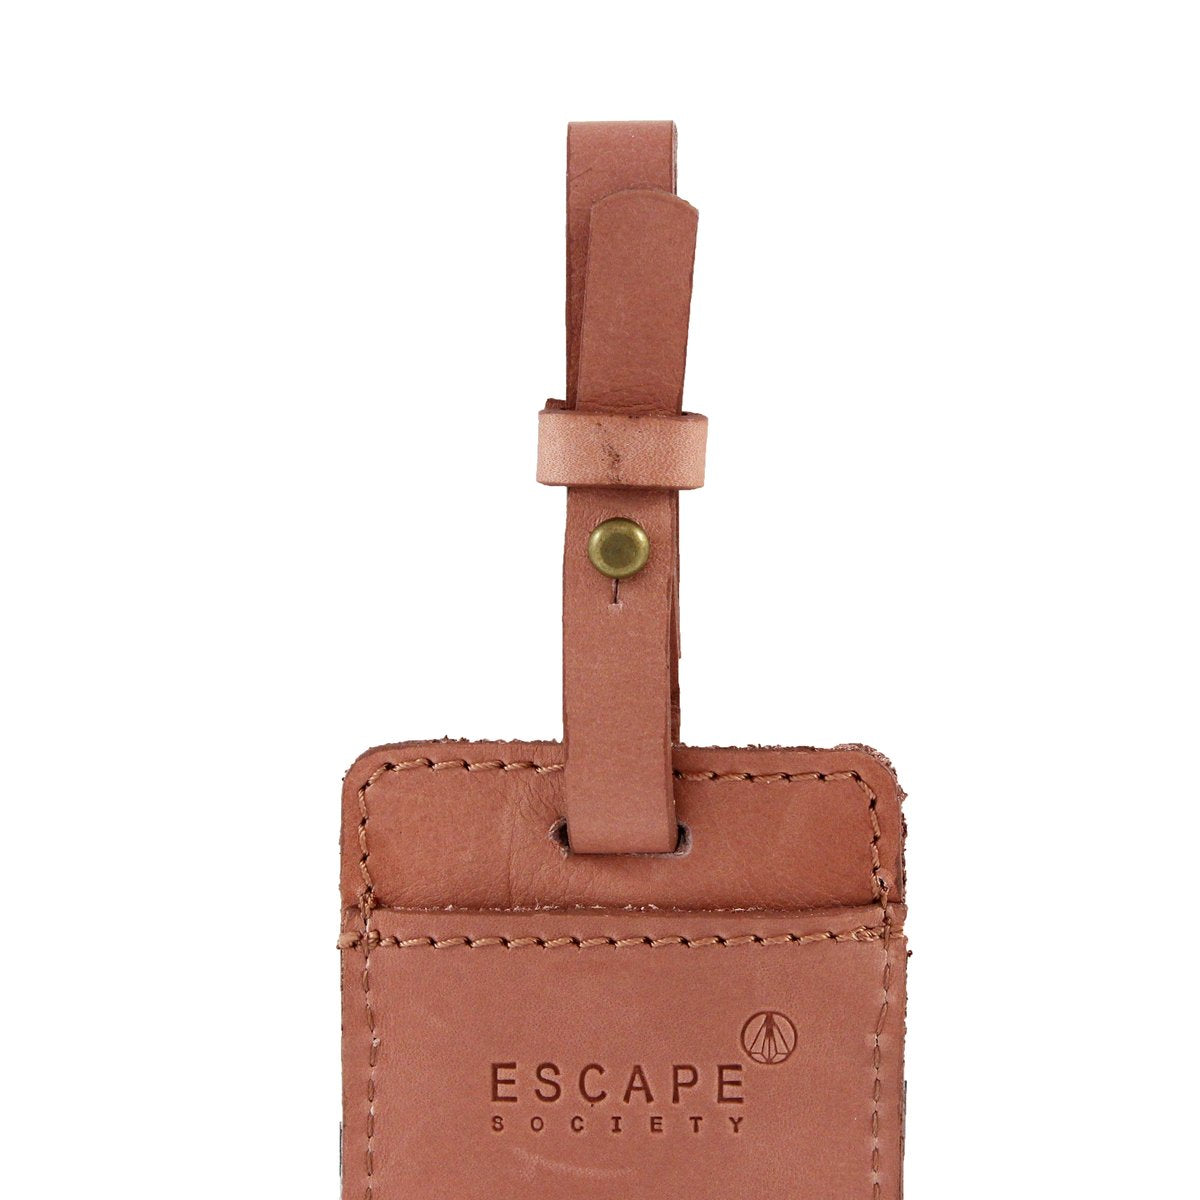 Nurse Medical Leather Luggage Tags Personalized Extra Address Cards With Adjustable Strap